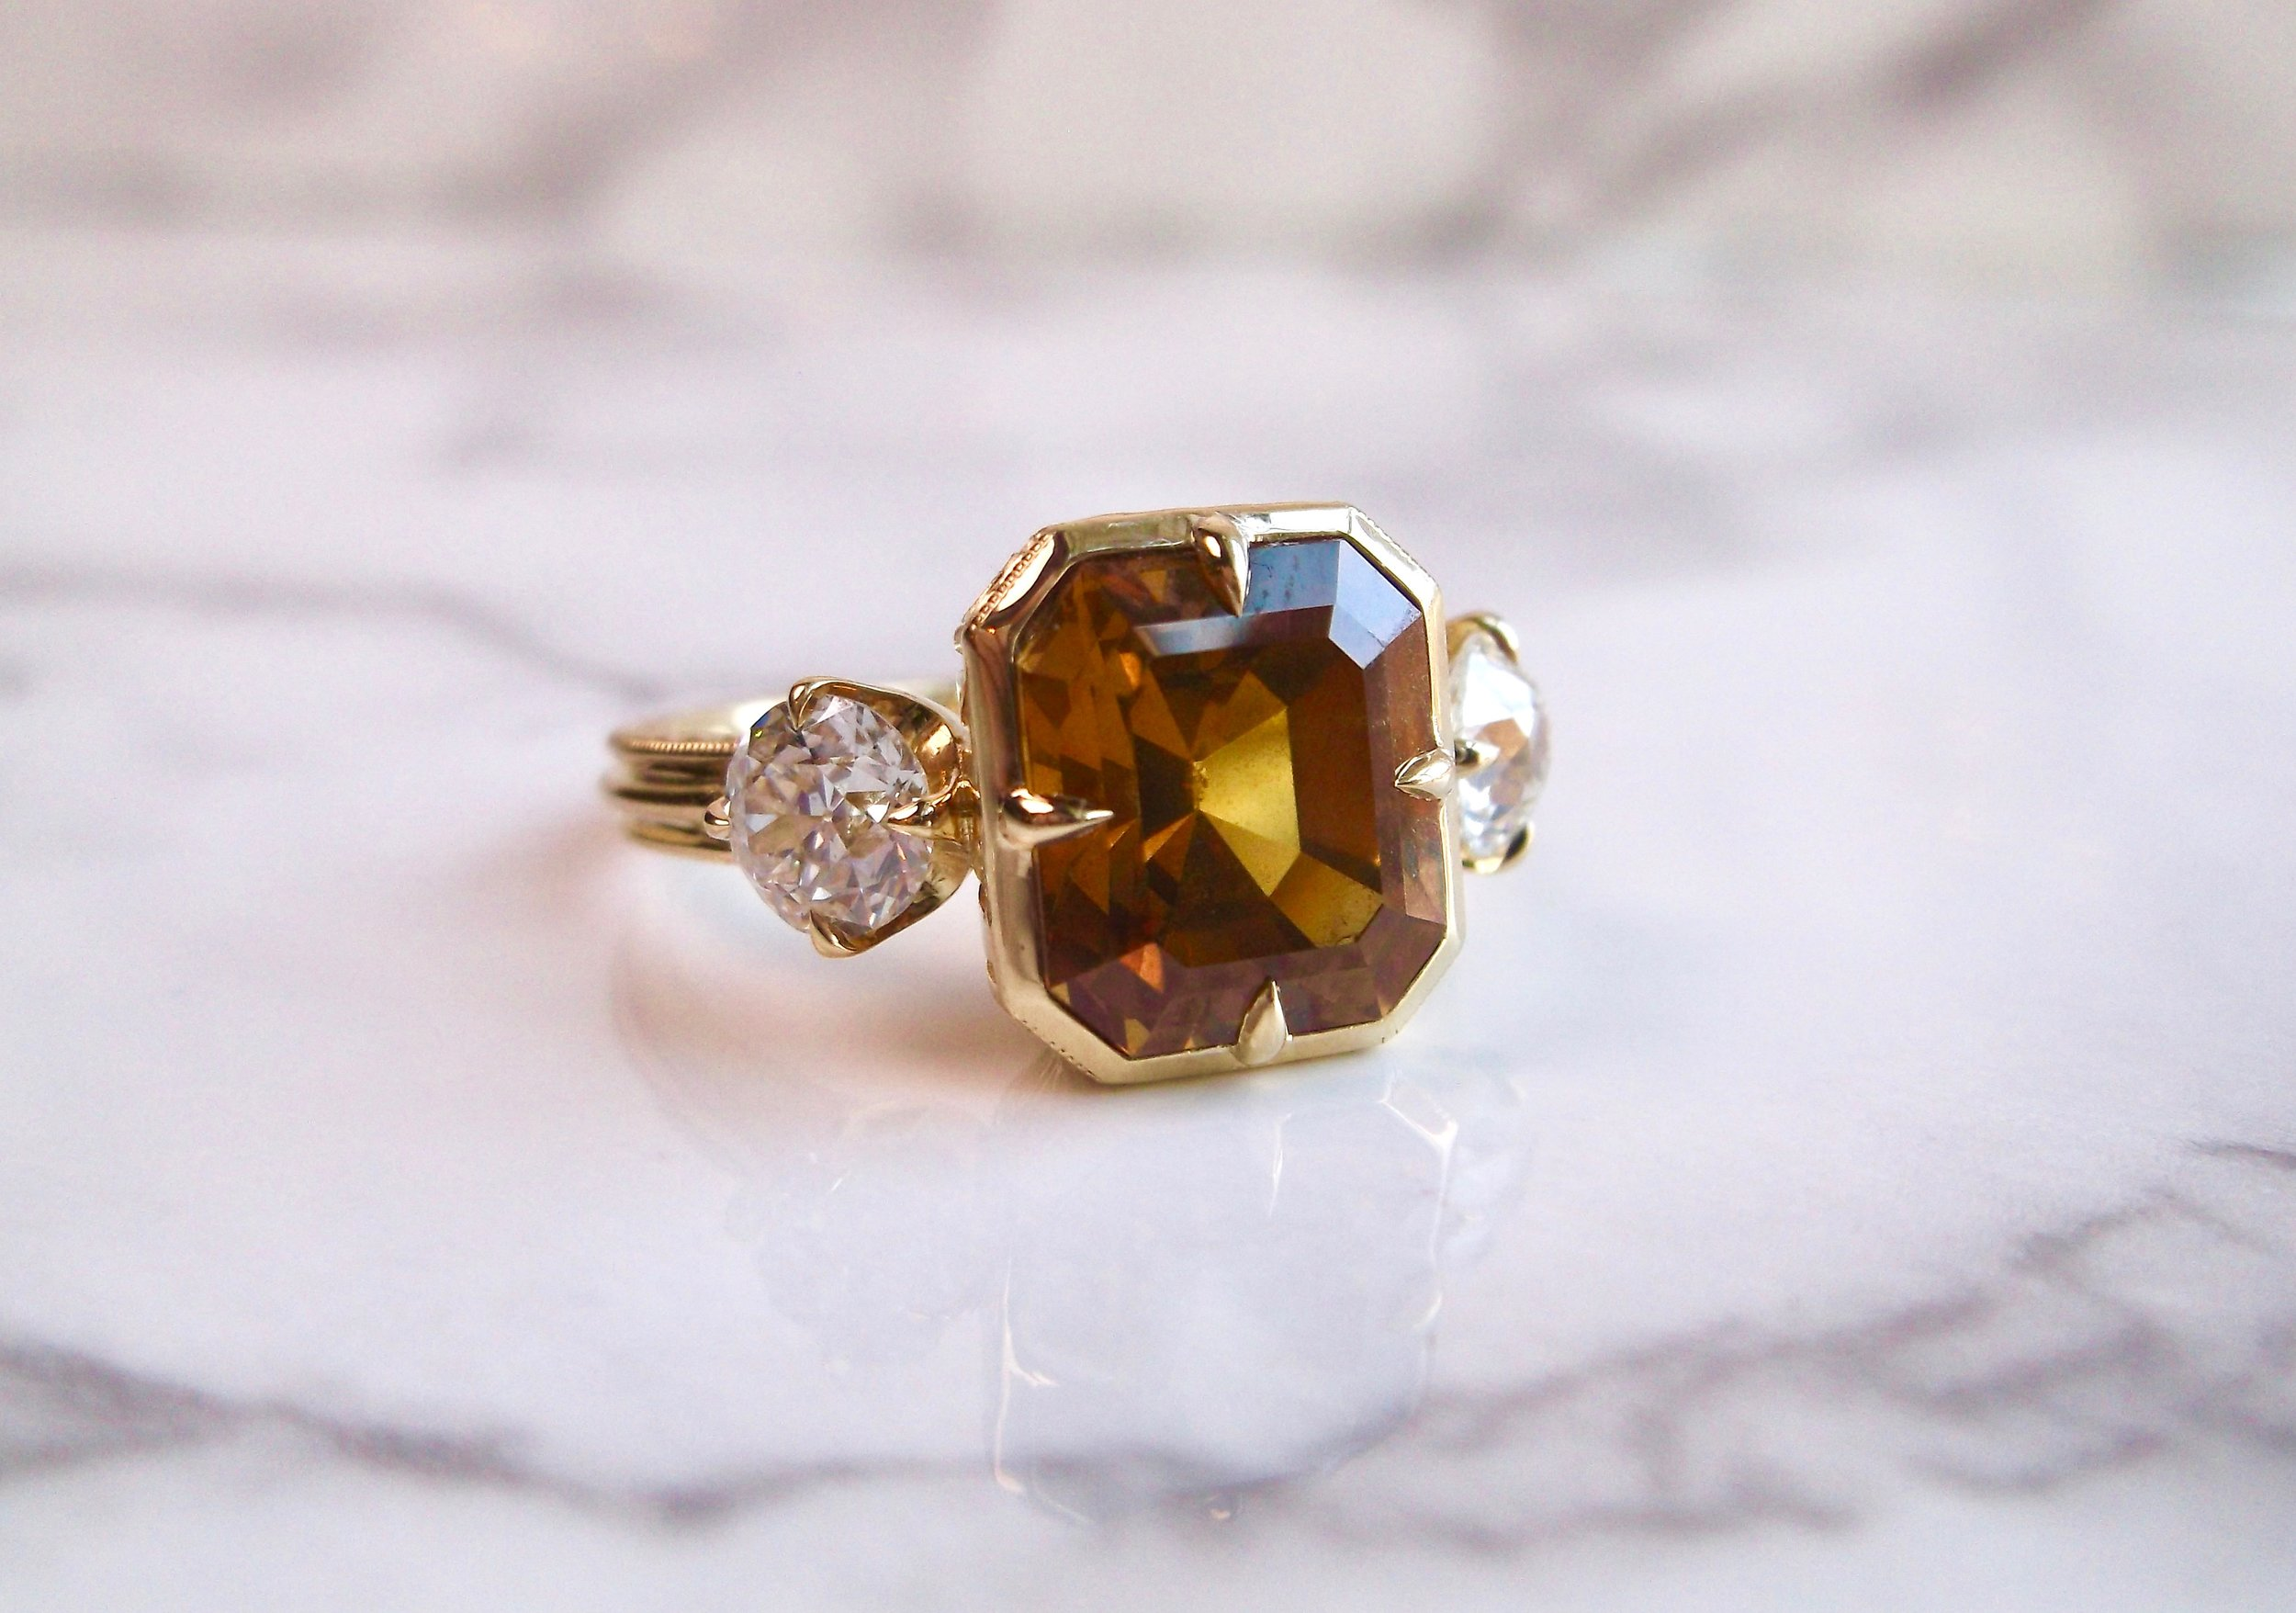 Excuse us while we pick our jaws up off the floor! This fabulous 4.38 carat golden honey colored sapphire and diamond ring is to die for! See her in all her glory  HERE .